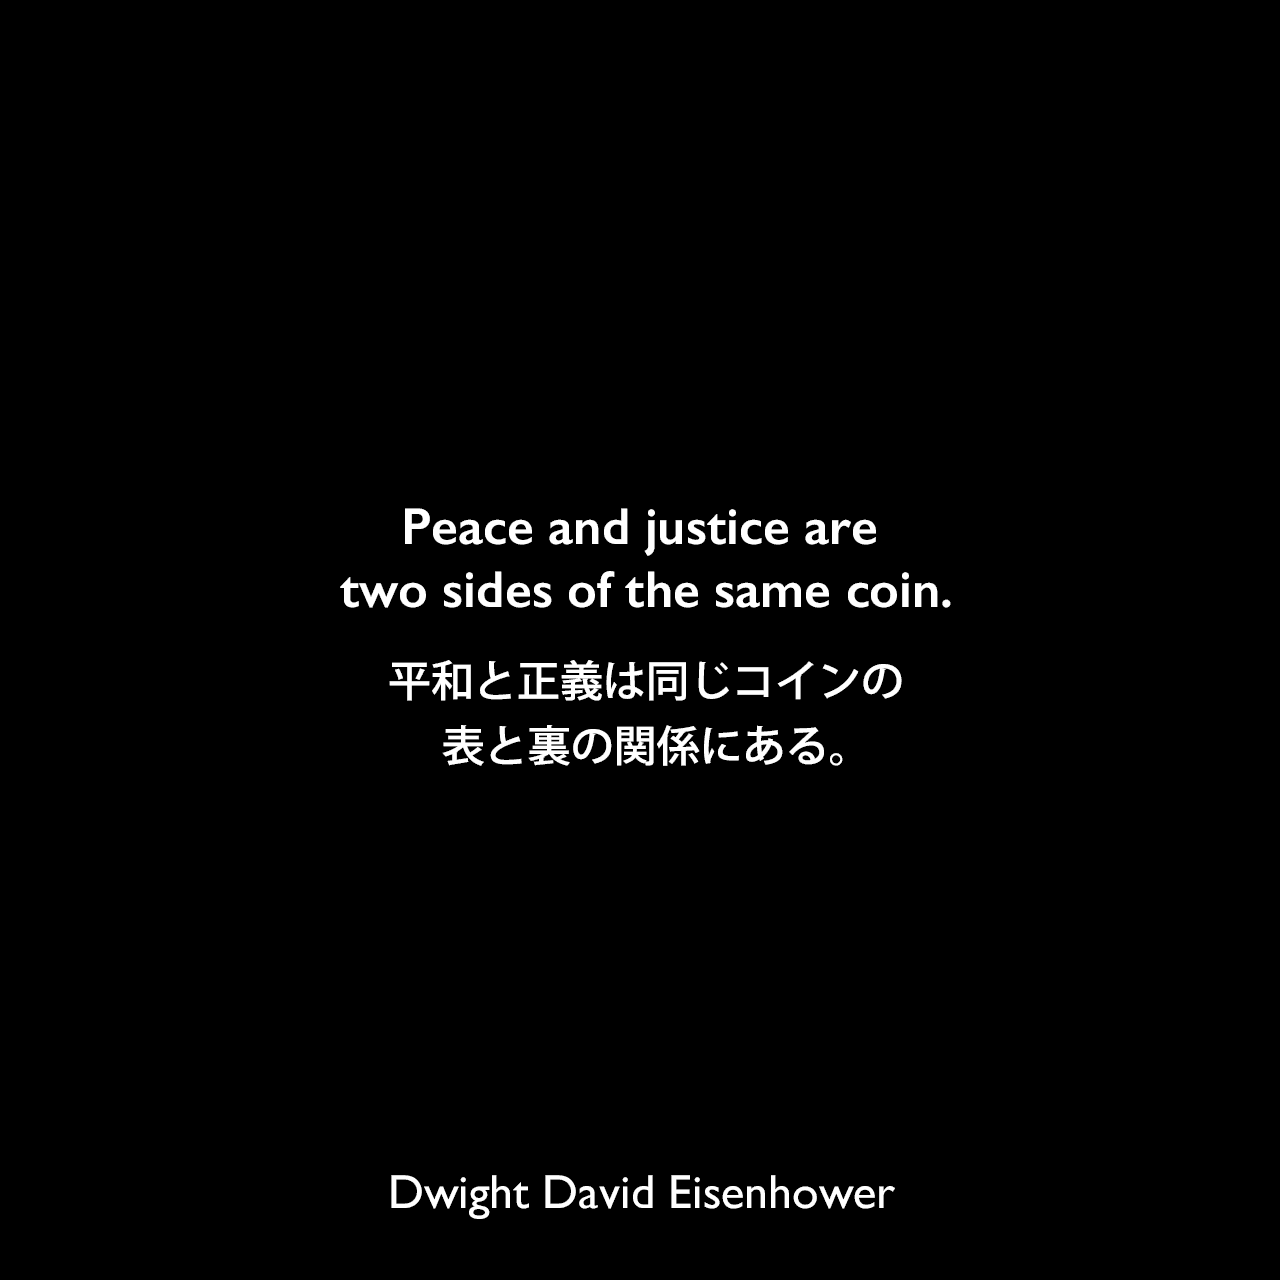 Peace and justice are two sides of the same coin.平和と正義は同じコインの表と裏の関係にある。Dwight David Eisenhower